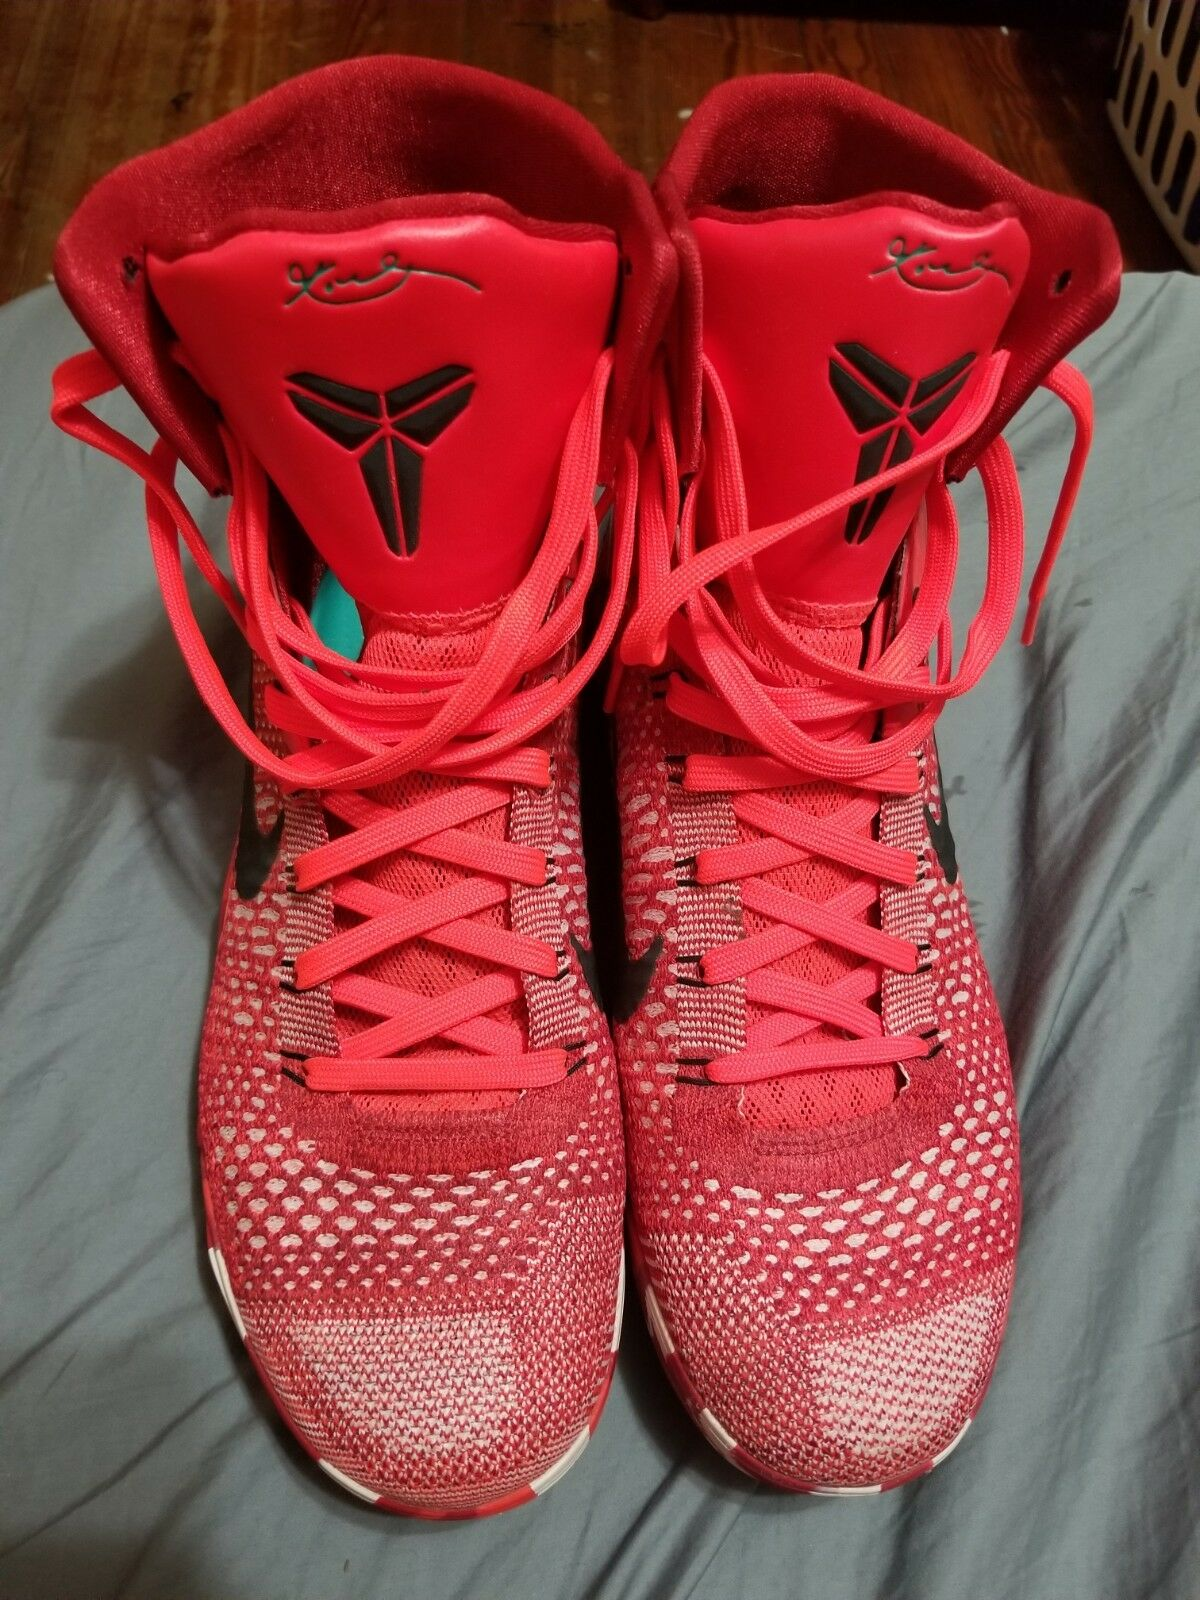 Nike Kobe 9 IX Elite Christmas Mens Size 10.5 630847-600 Worn once. No box.